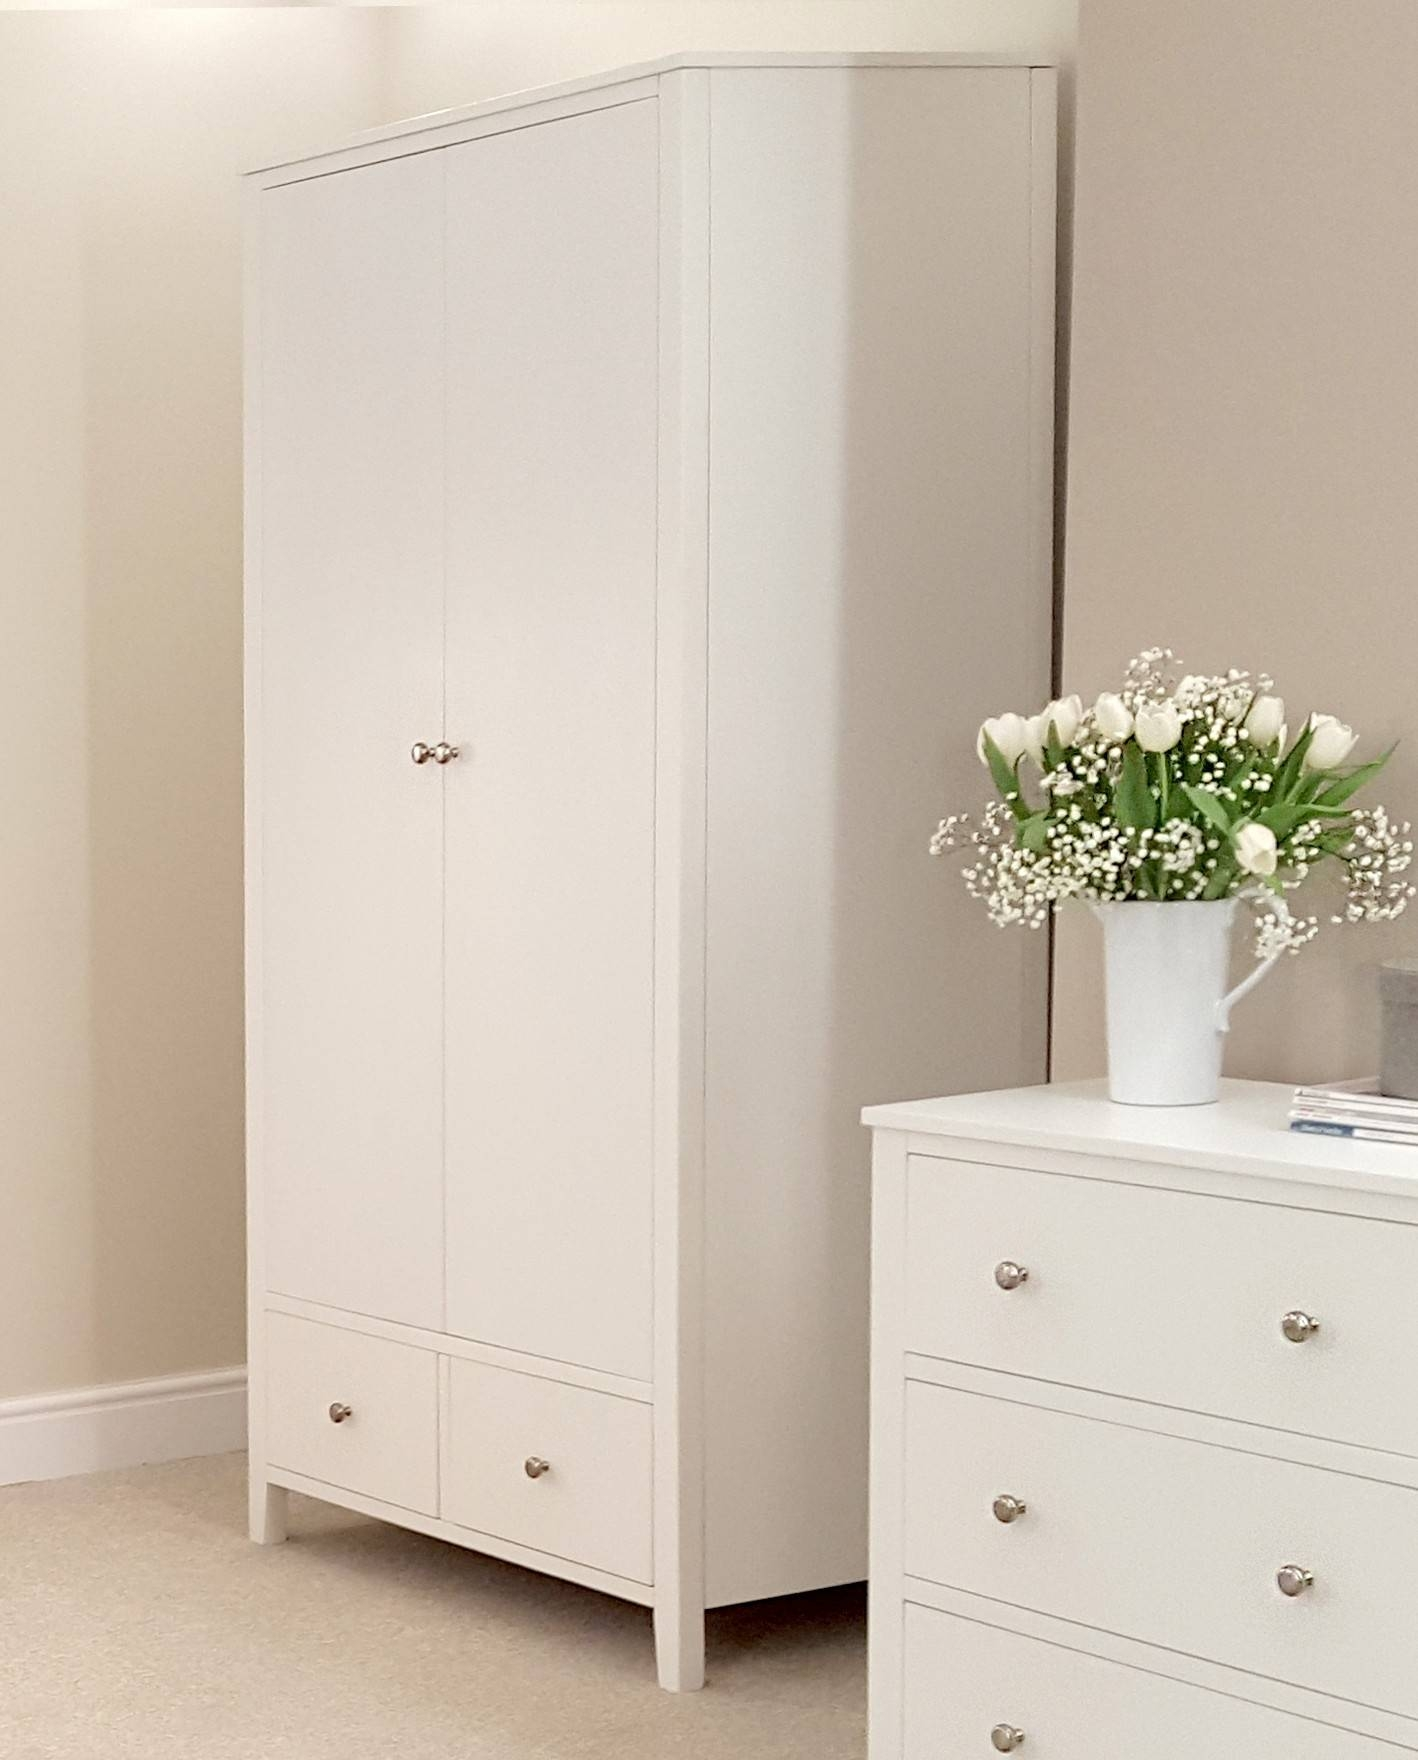 Brooklyn White Double Wardrobe With 2 Drawers| Bedroom Furniture throughout White Double Wardrobes With Drawers (Image 3 of 15)